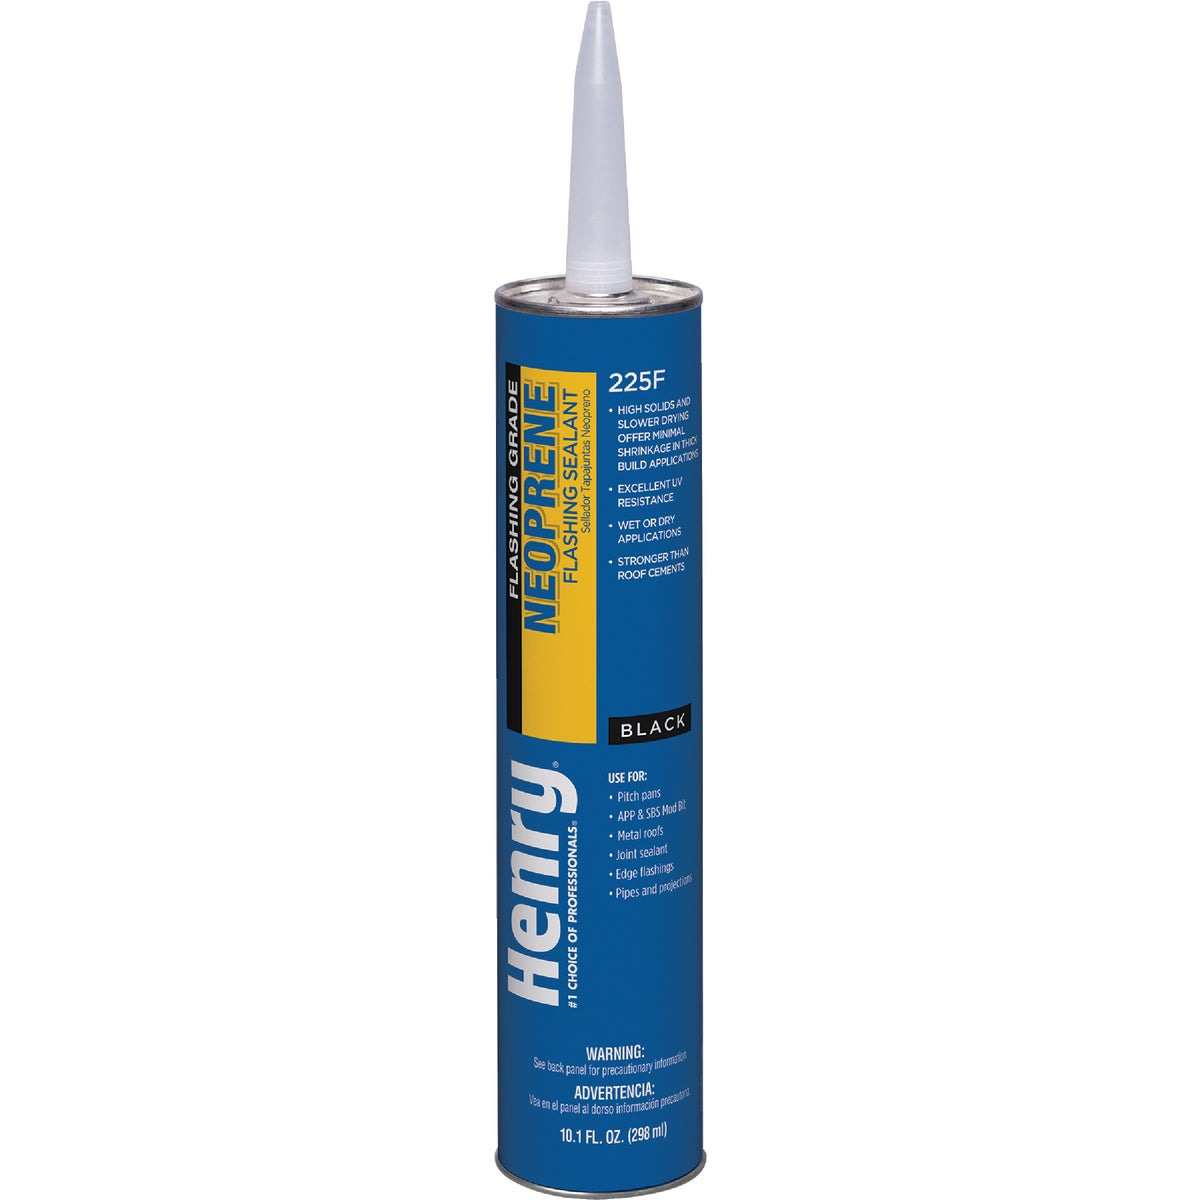 11OZ NPRN FLASH SEALANT